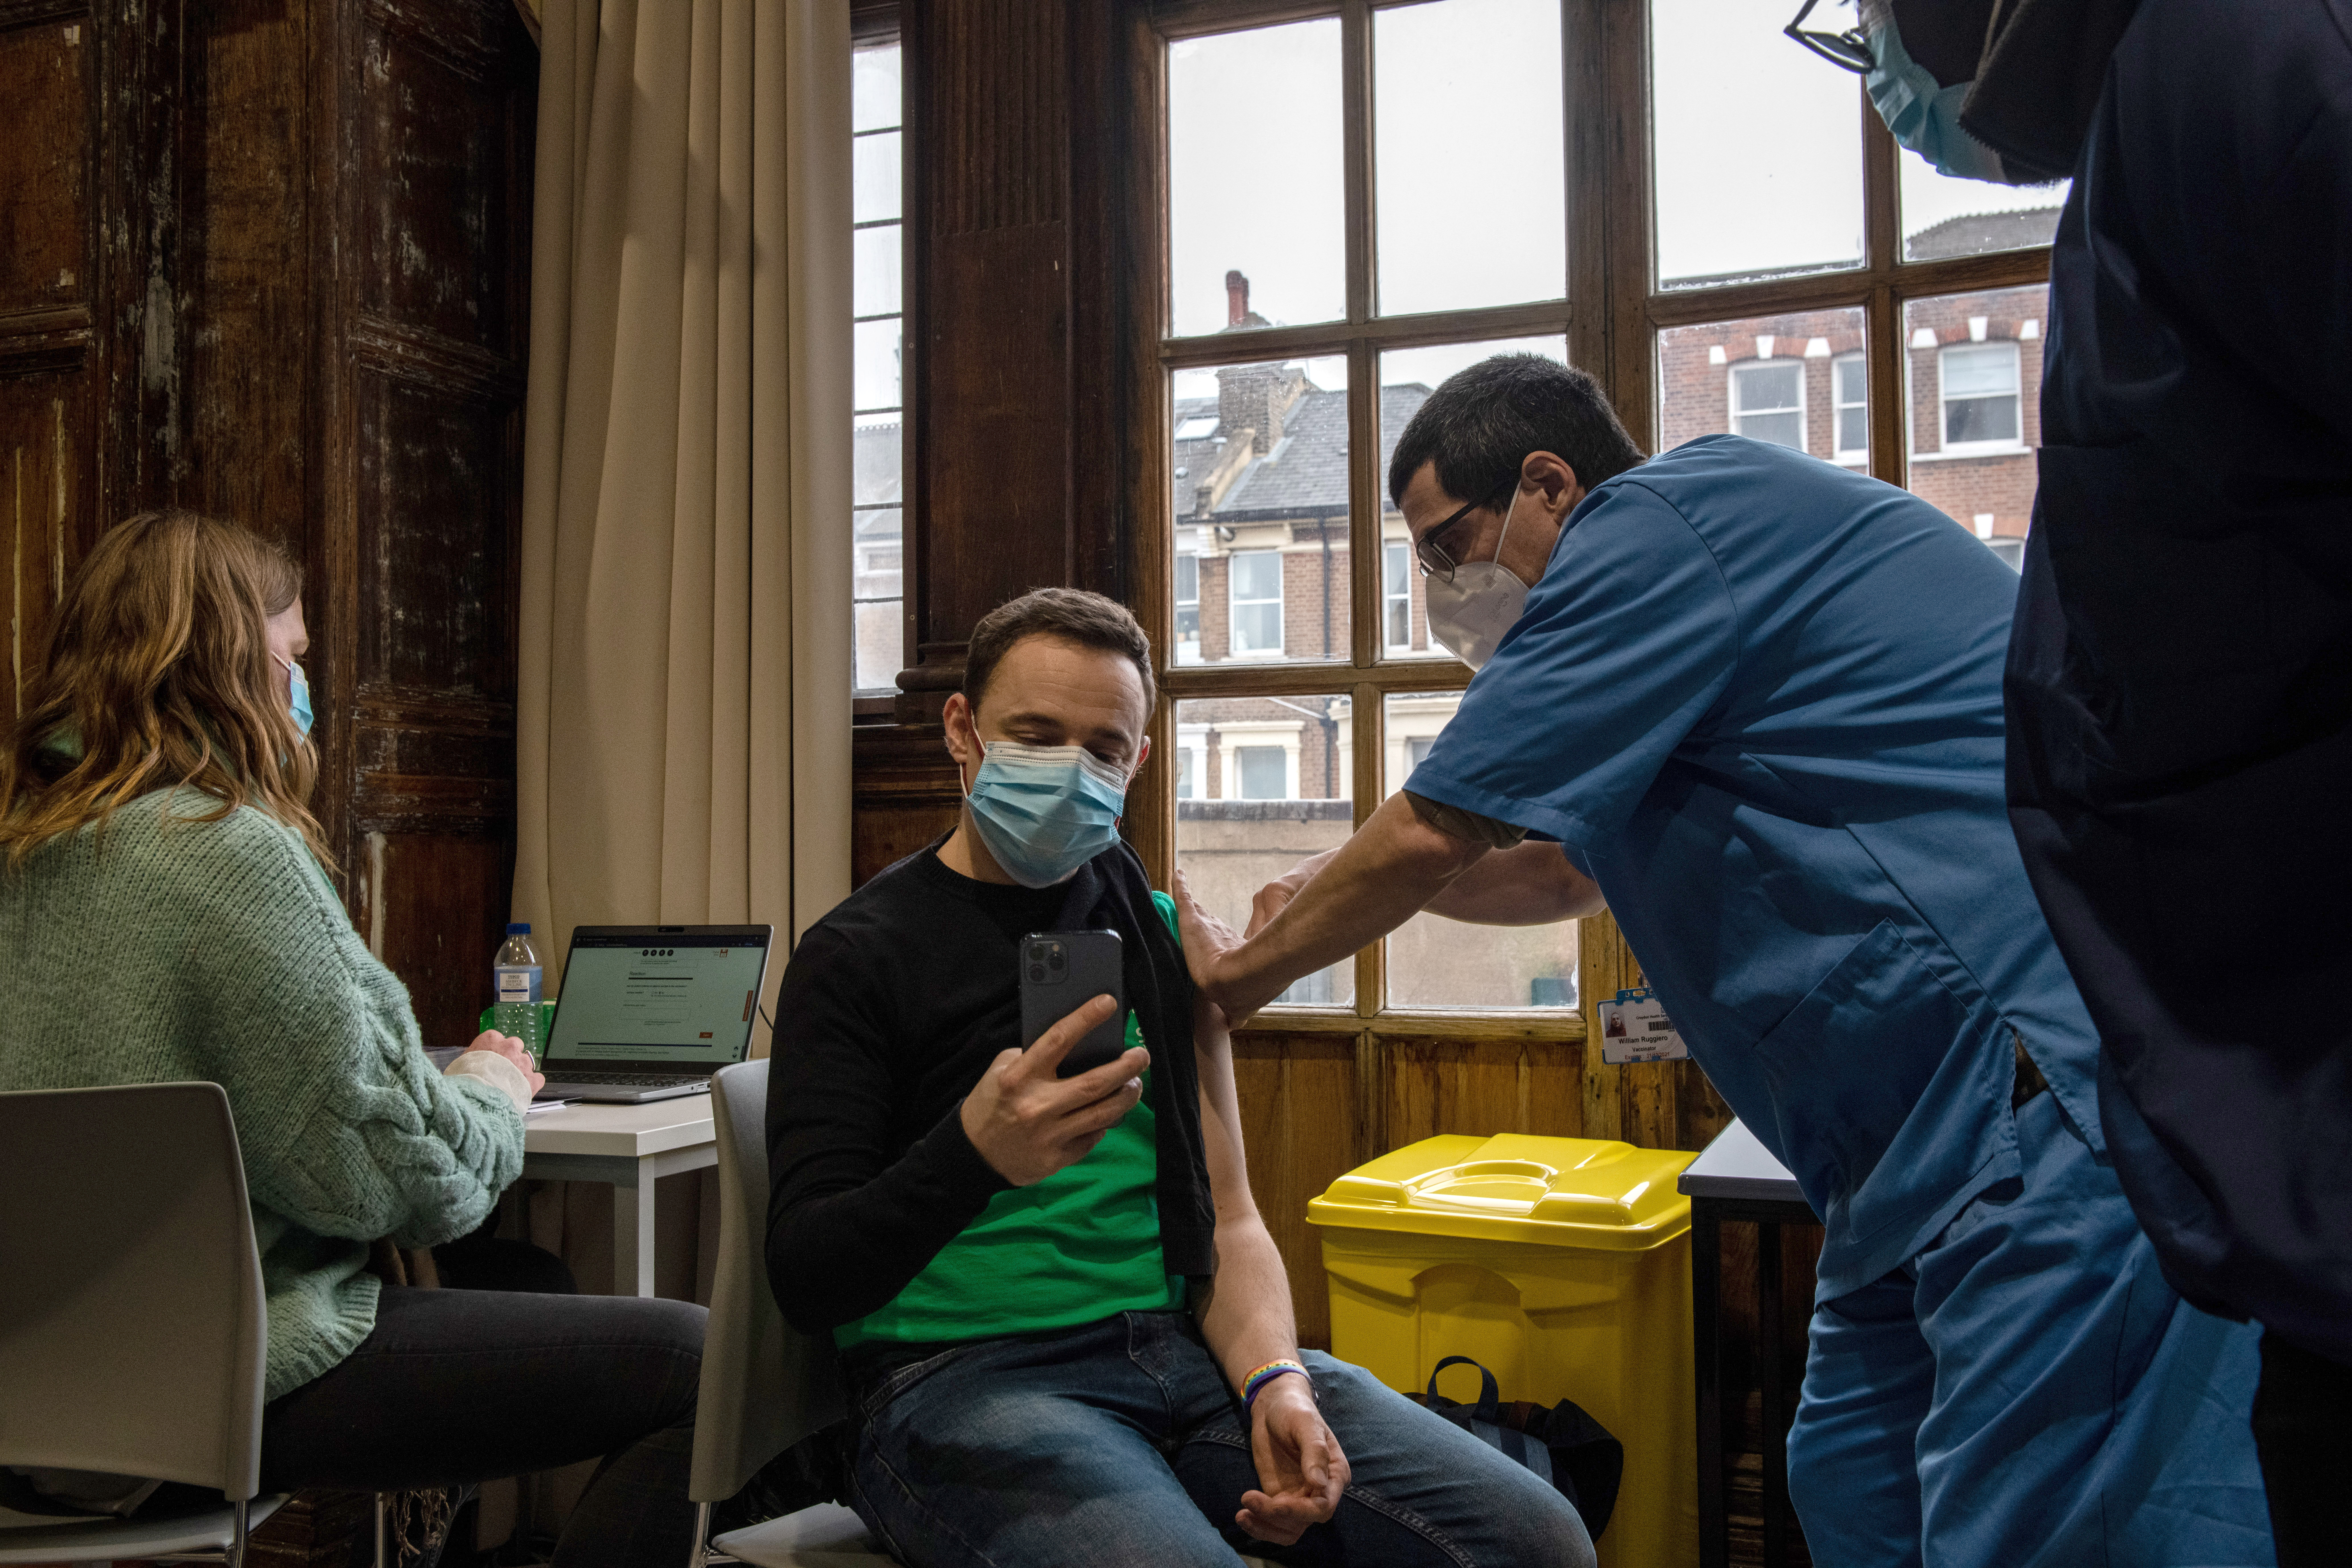 A person sits in a chair while receiving a Covid-19 vaccine from a health care worker.